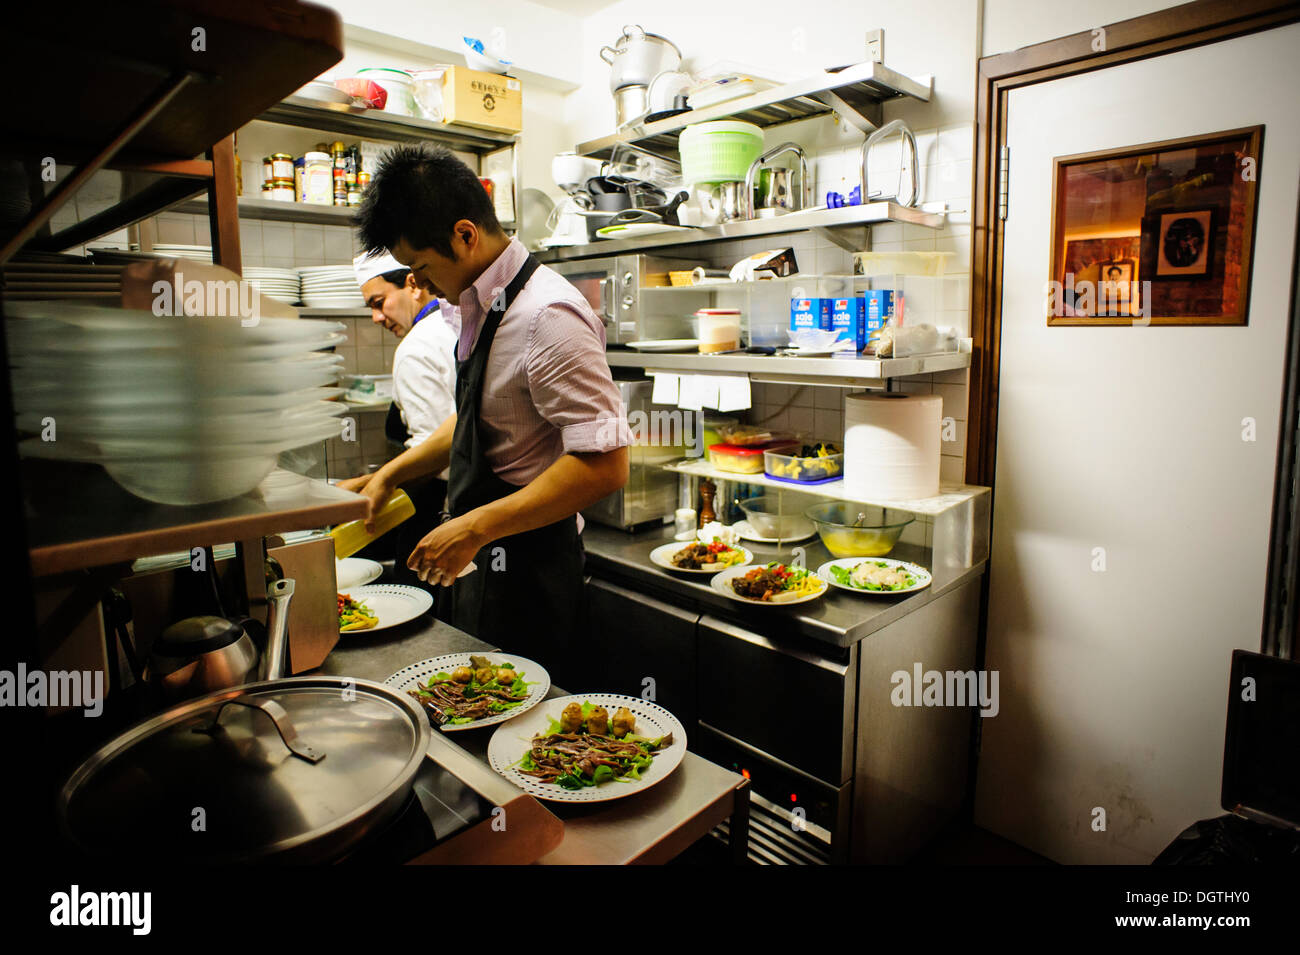 People working in a small professional kitchen la for Kitchen 8 restaurant